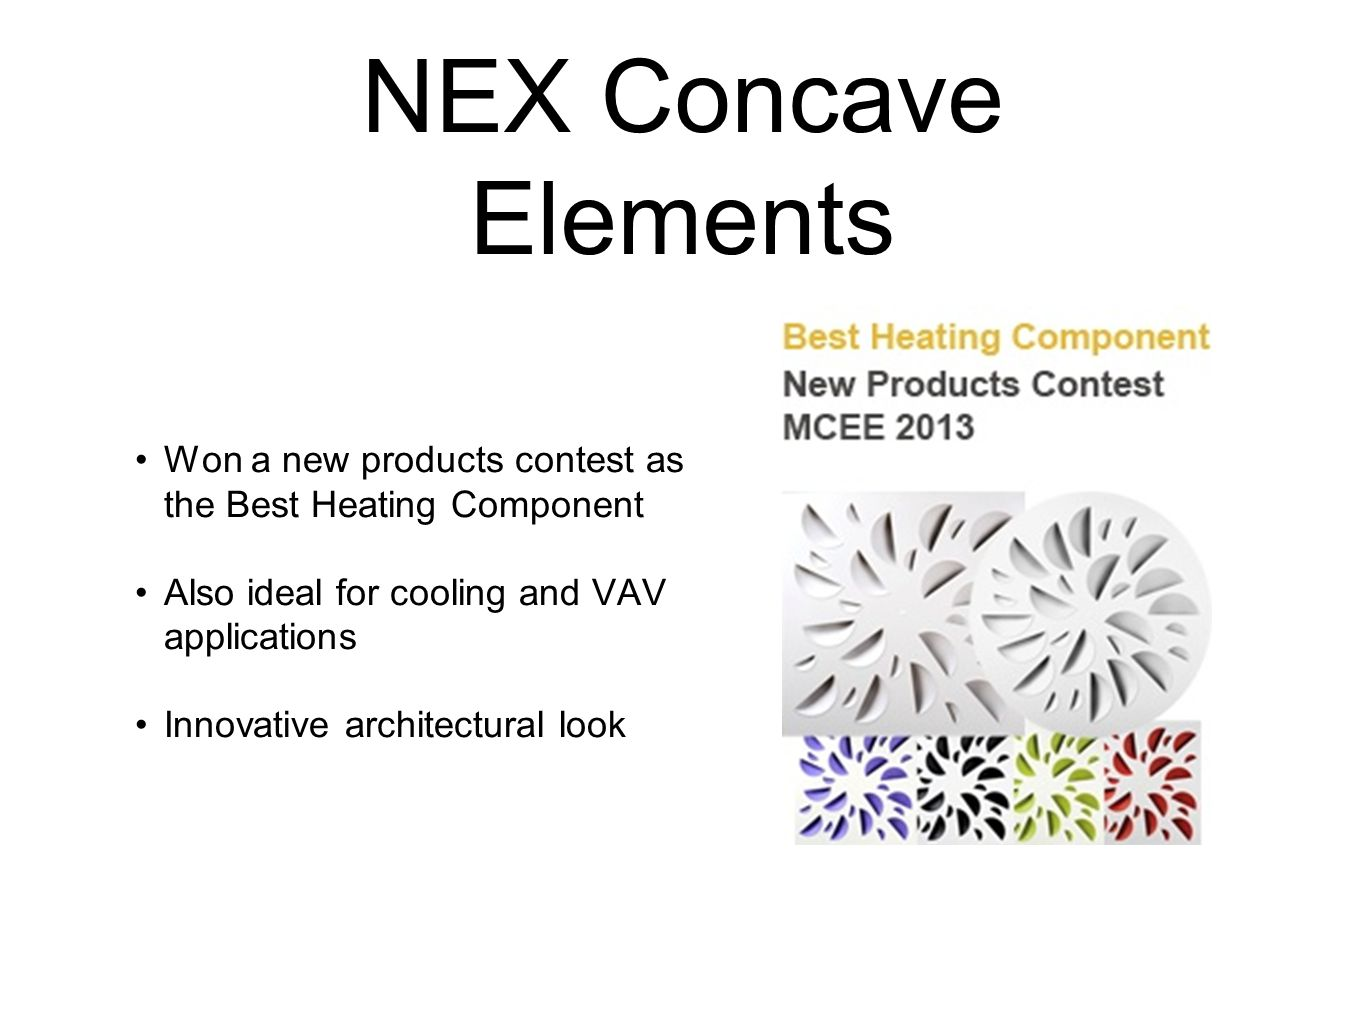 NEX Concave Elements Won a new products contest as the Best Heating Component Also ideal for cooling and VAV applications Innovative architectural look